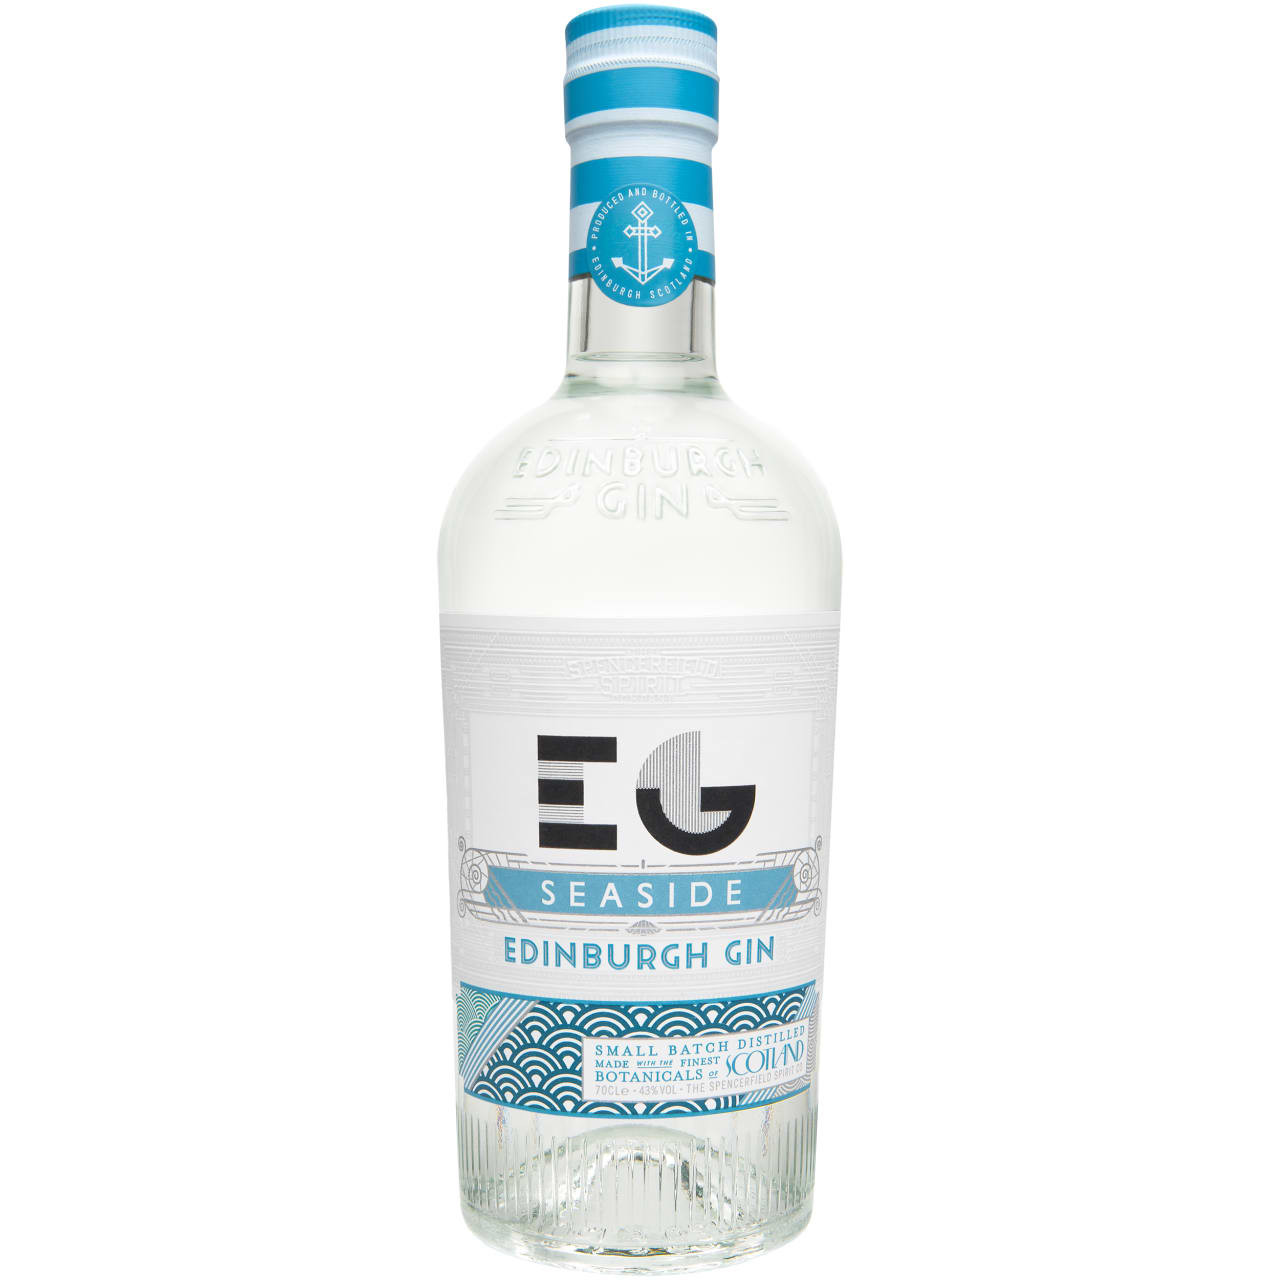 Product Image - Edinburgh Gin Seaside